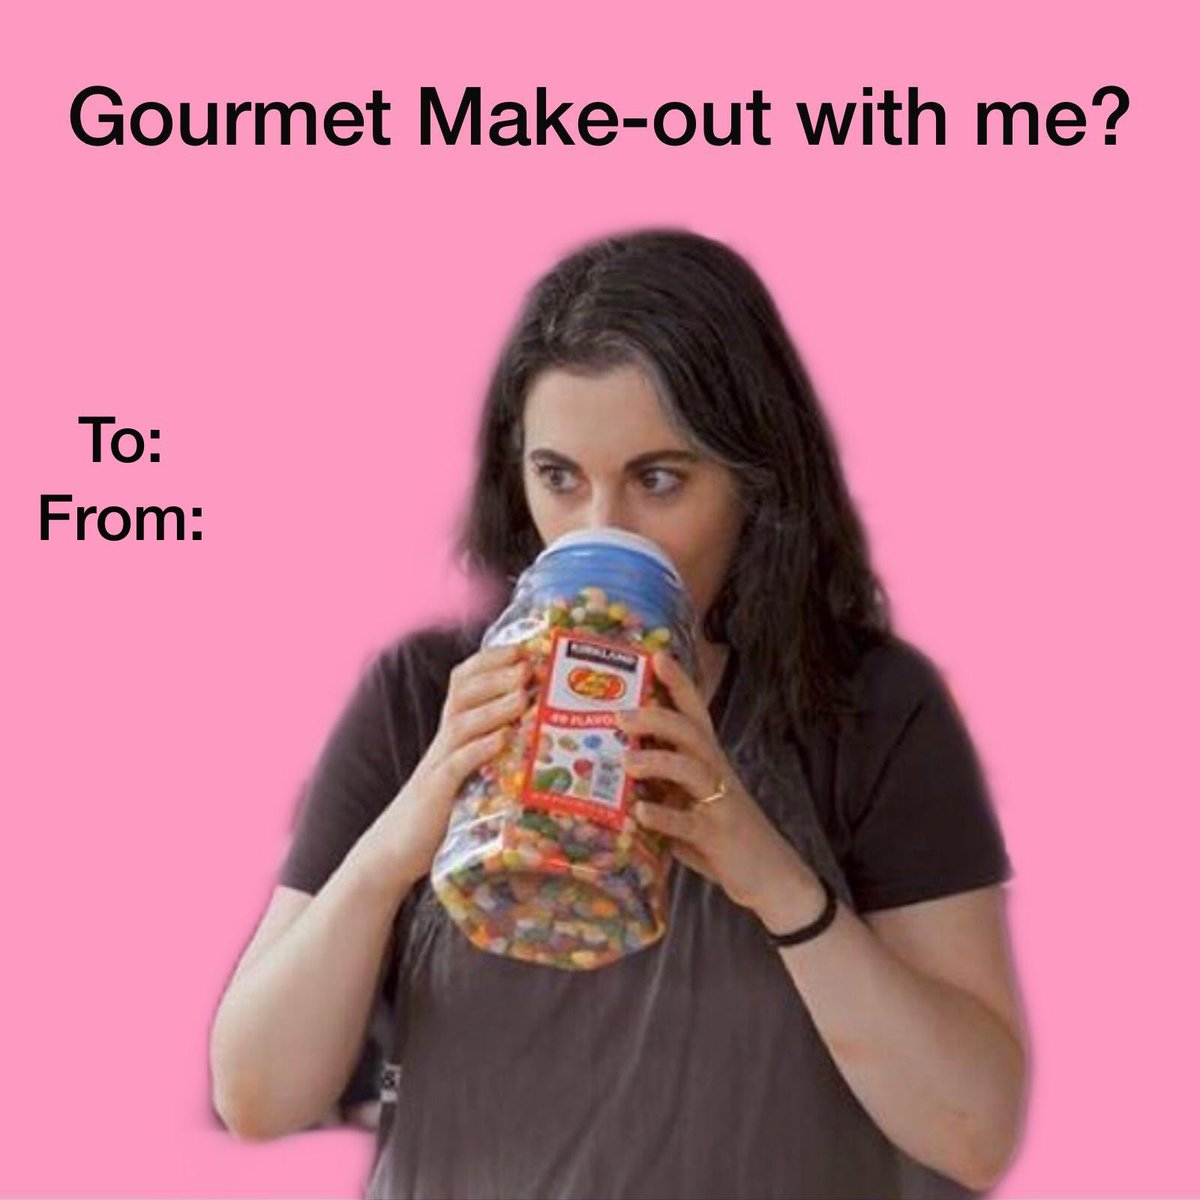 Happy Valentine's Day from Meme Appetit! 💕